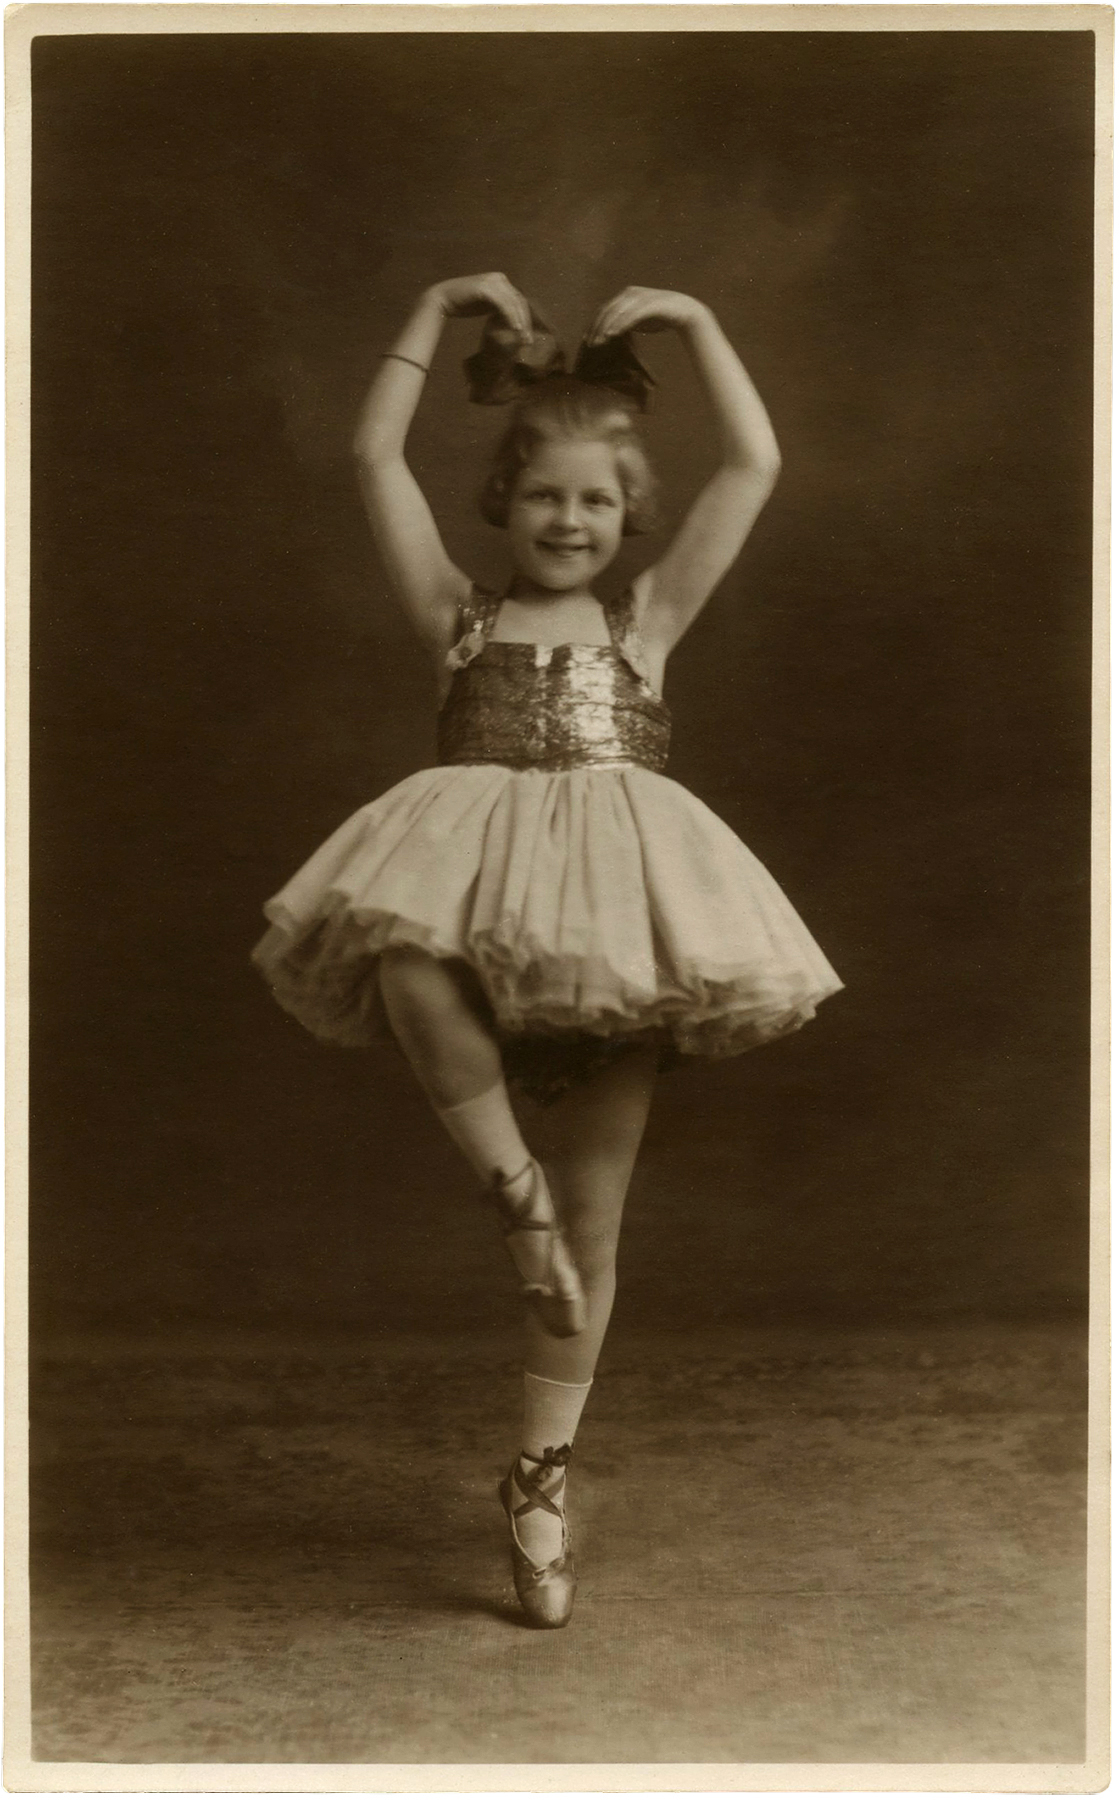 Vintage Ballerina Child Photo- Adorable!